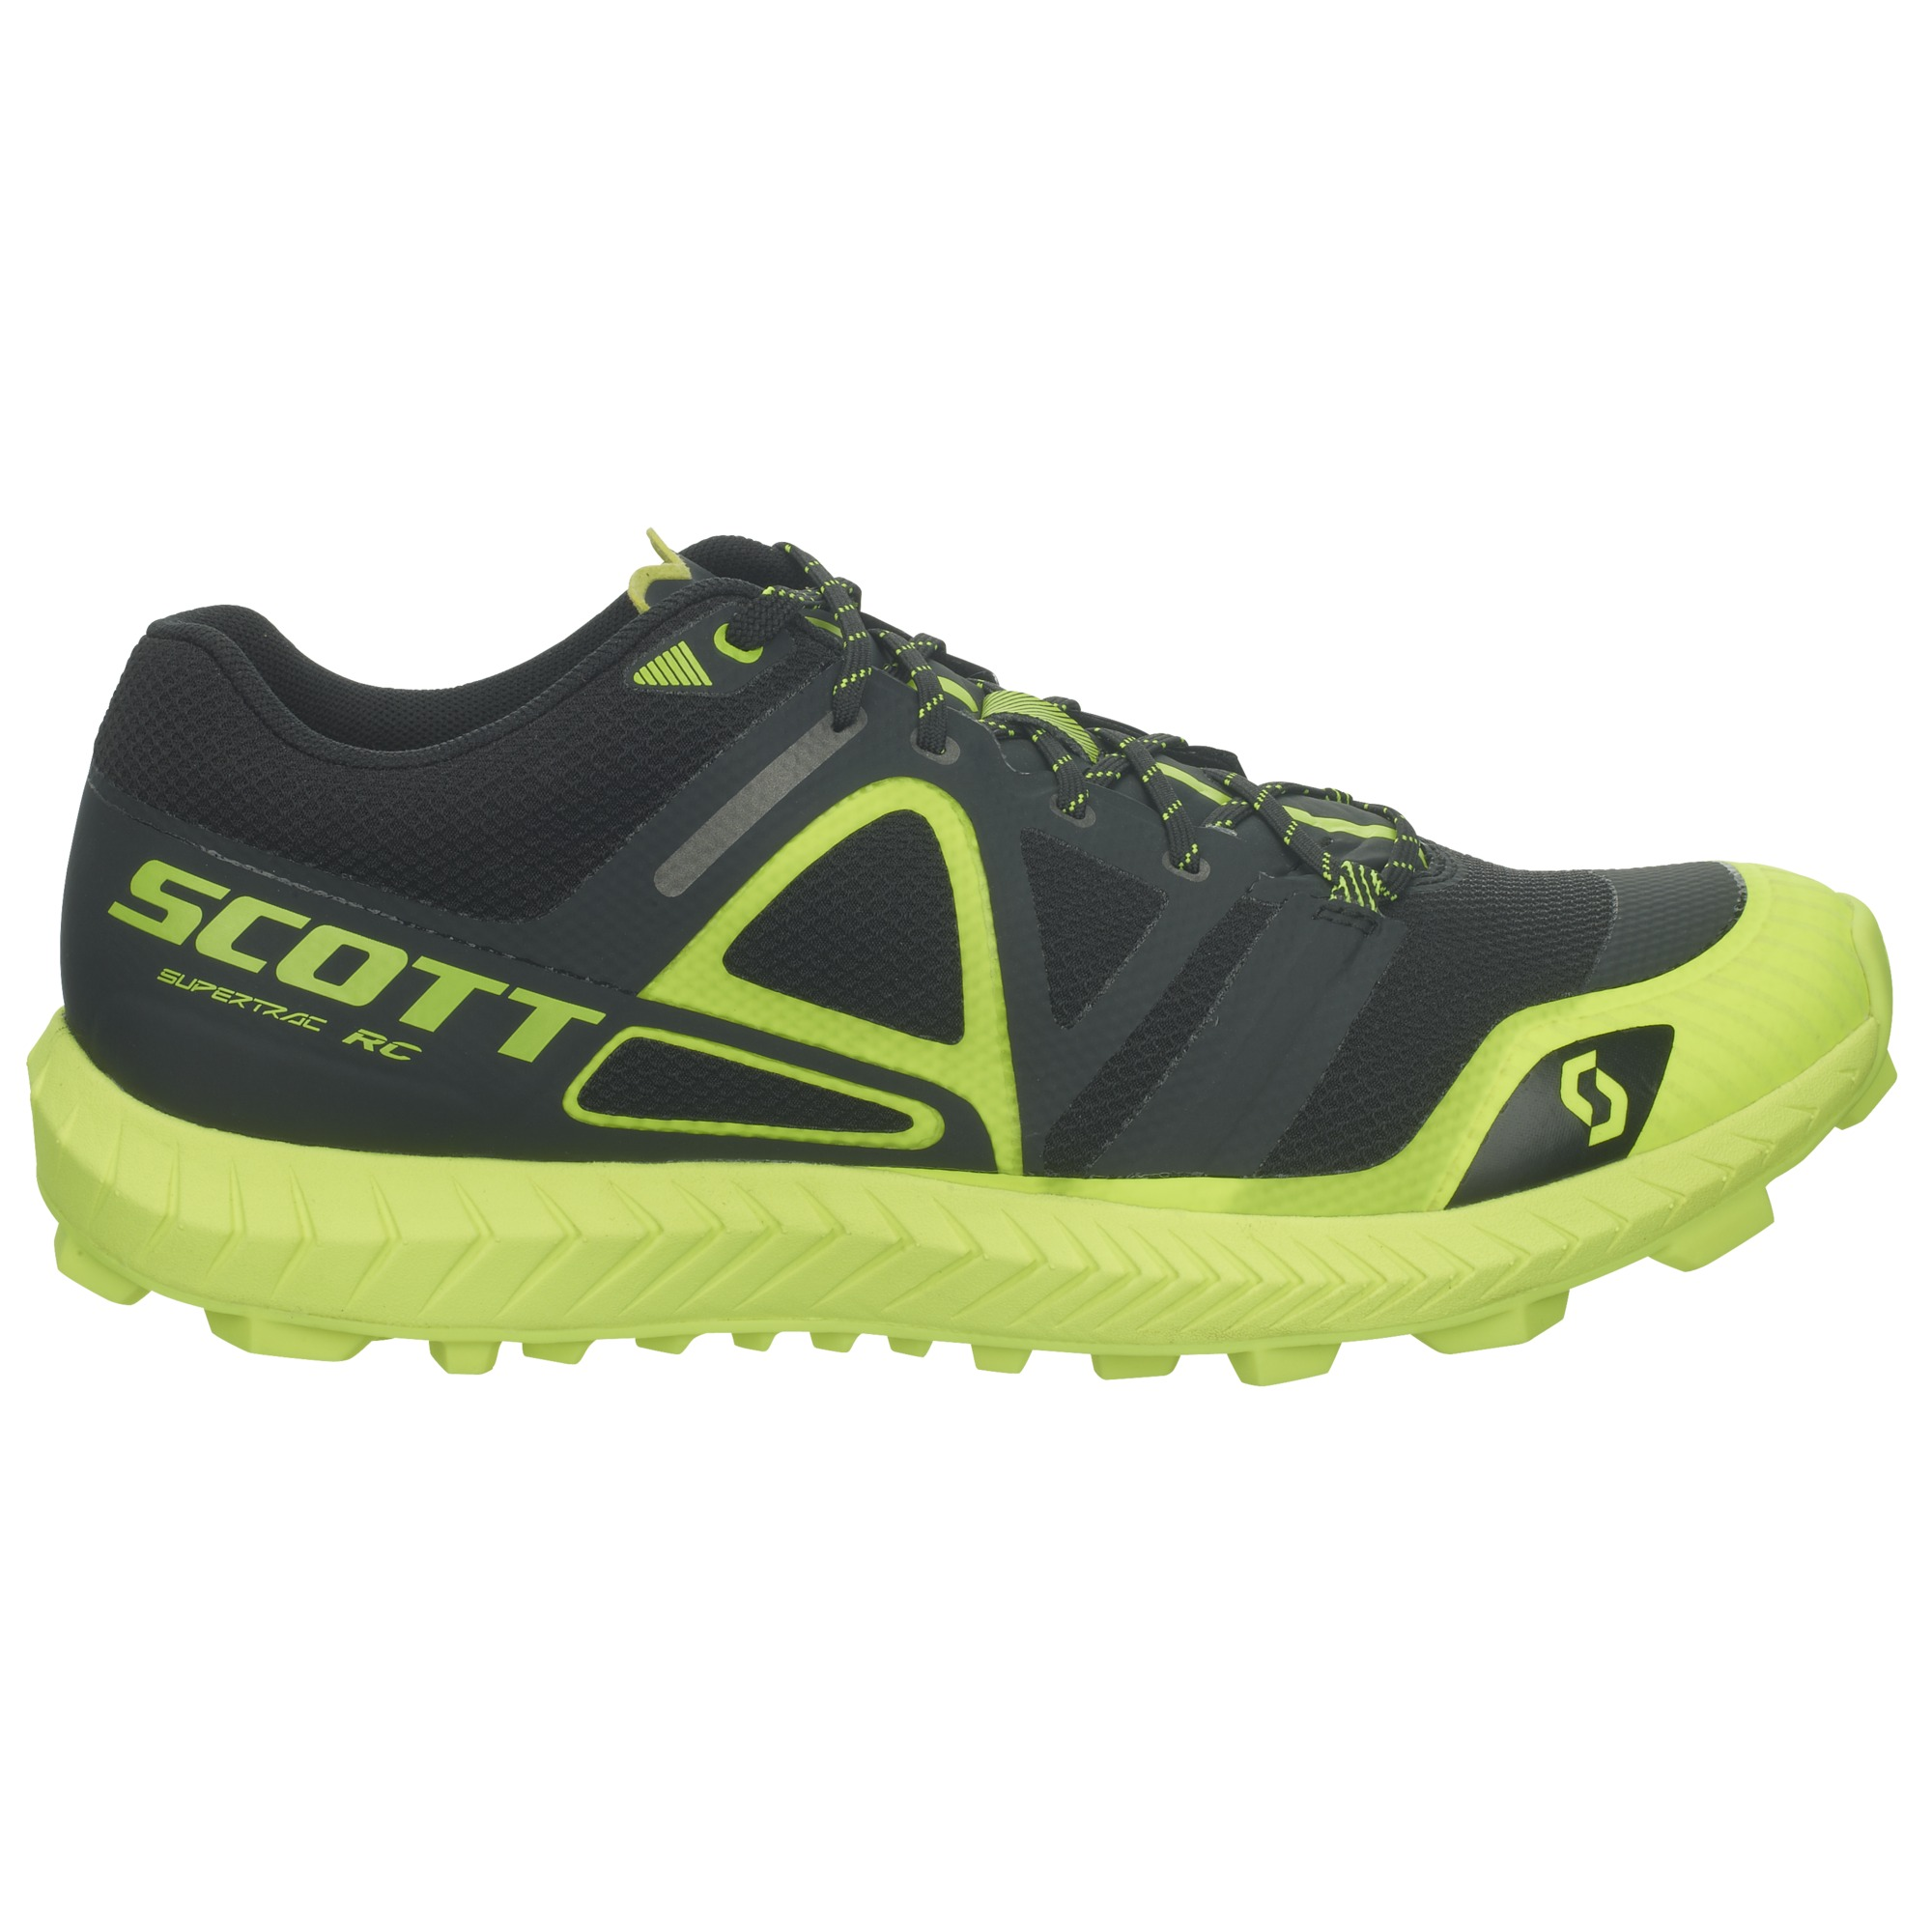 Chaussures femme SCOTT Supertrac RC